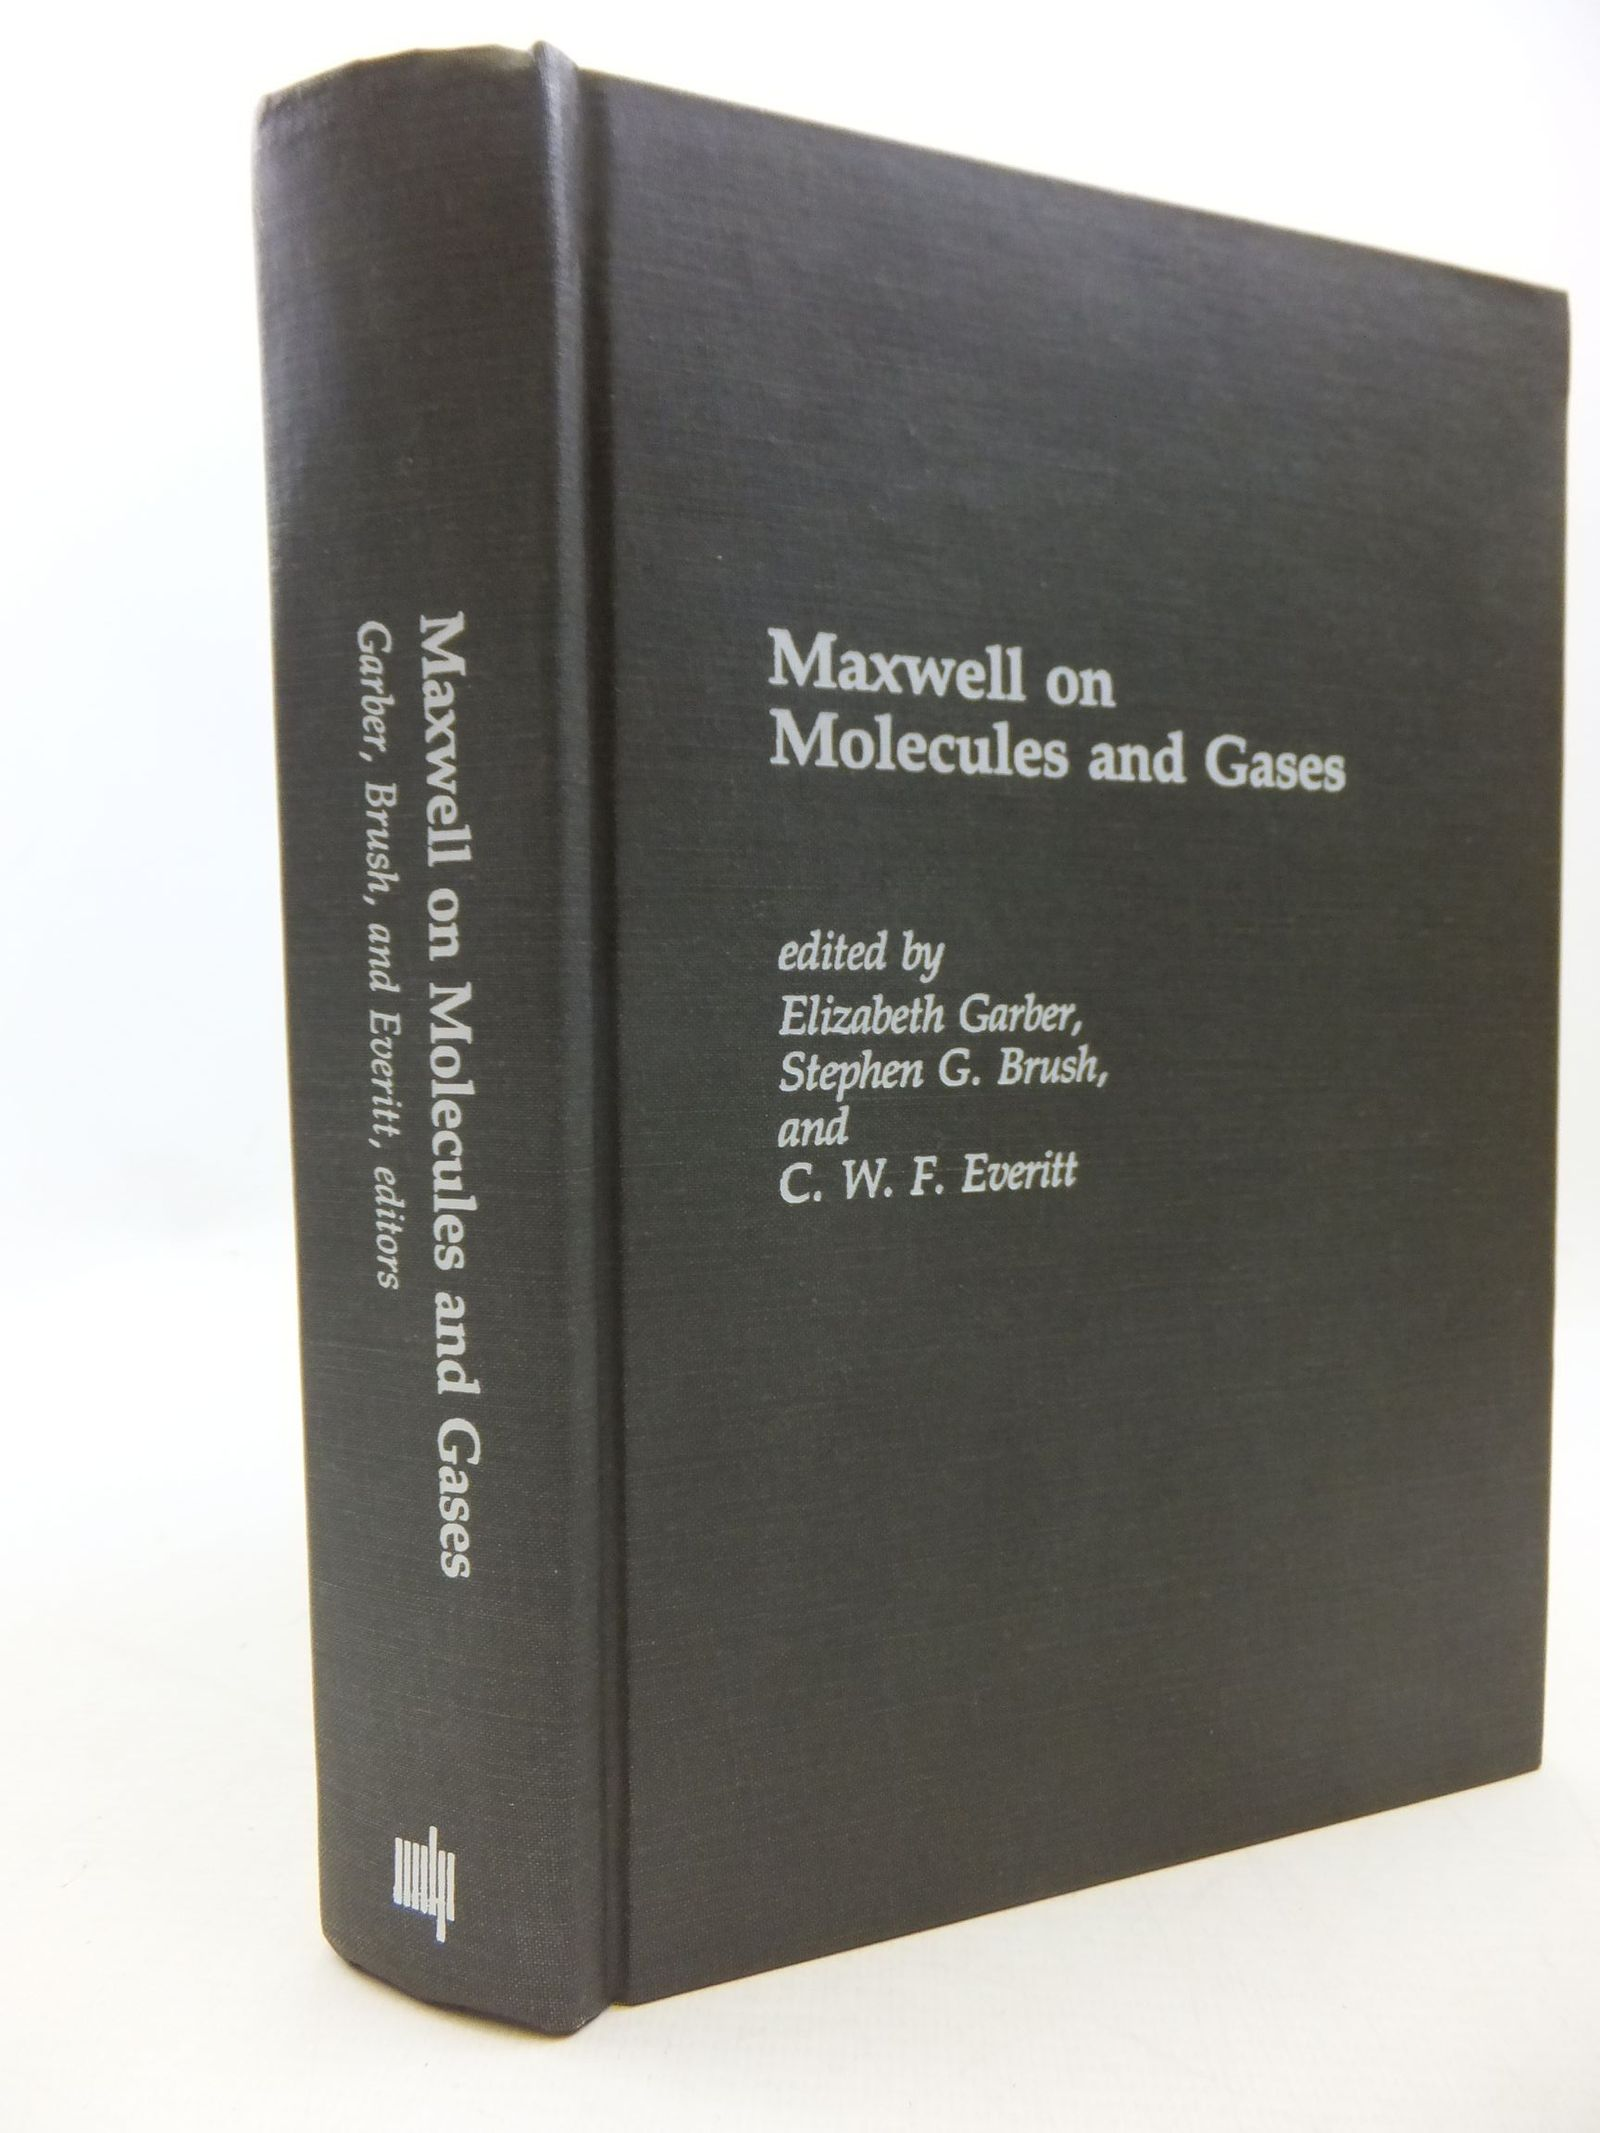 Photo of MAXWELL ON MOLECULES AND GASES